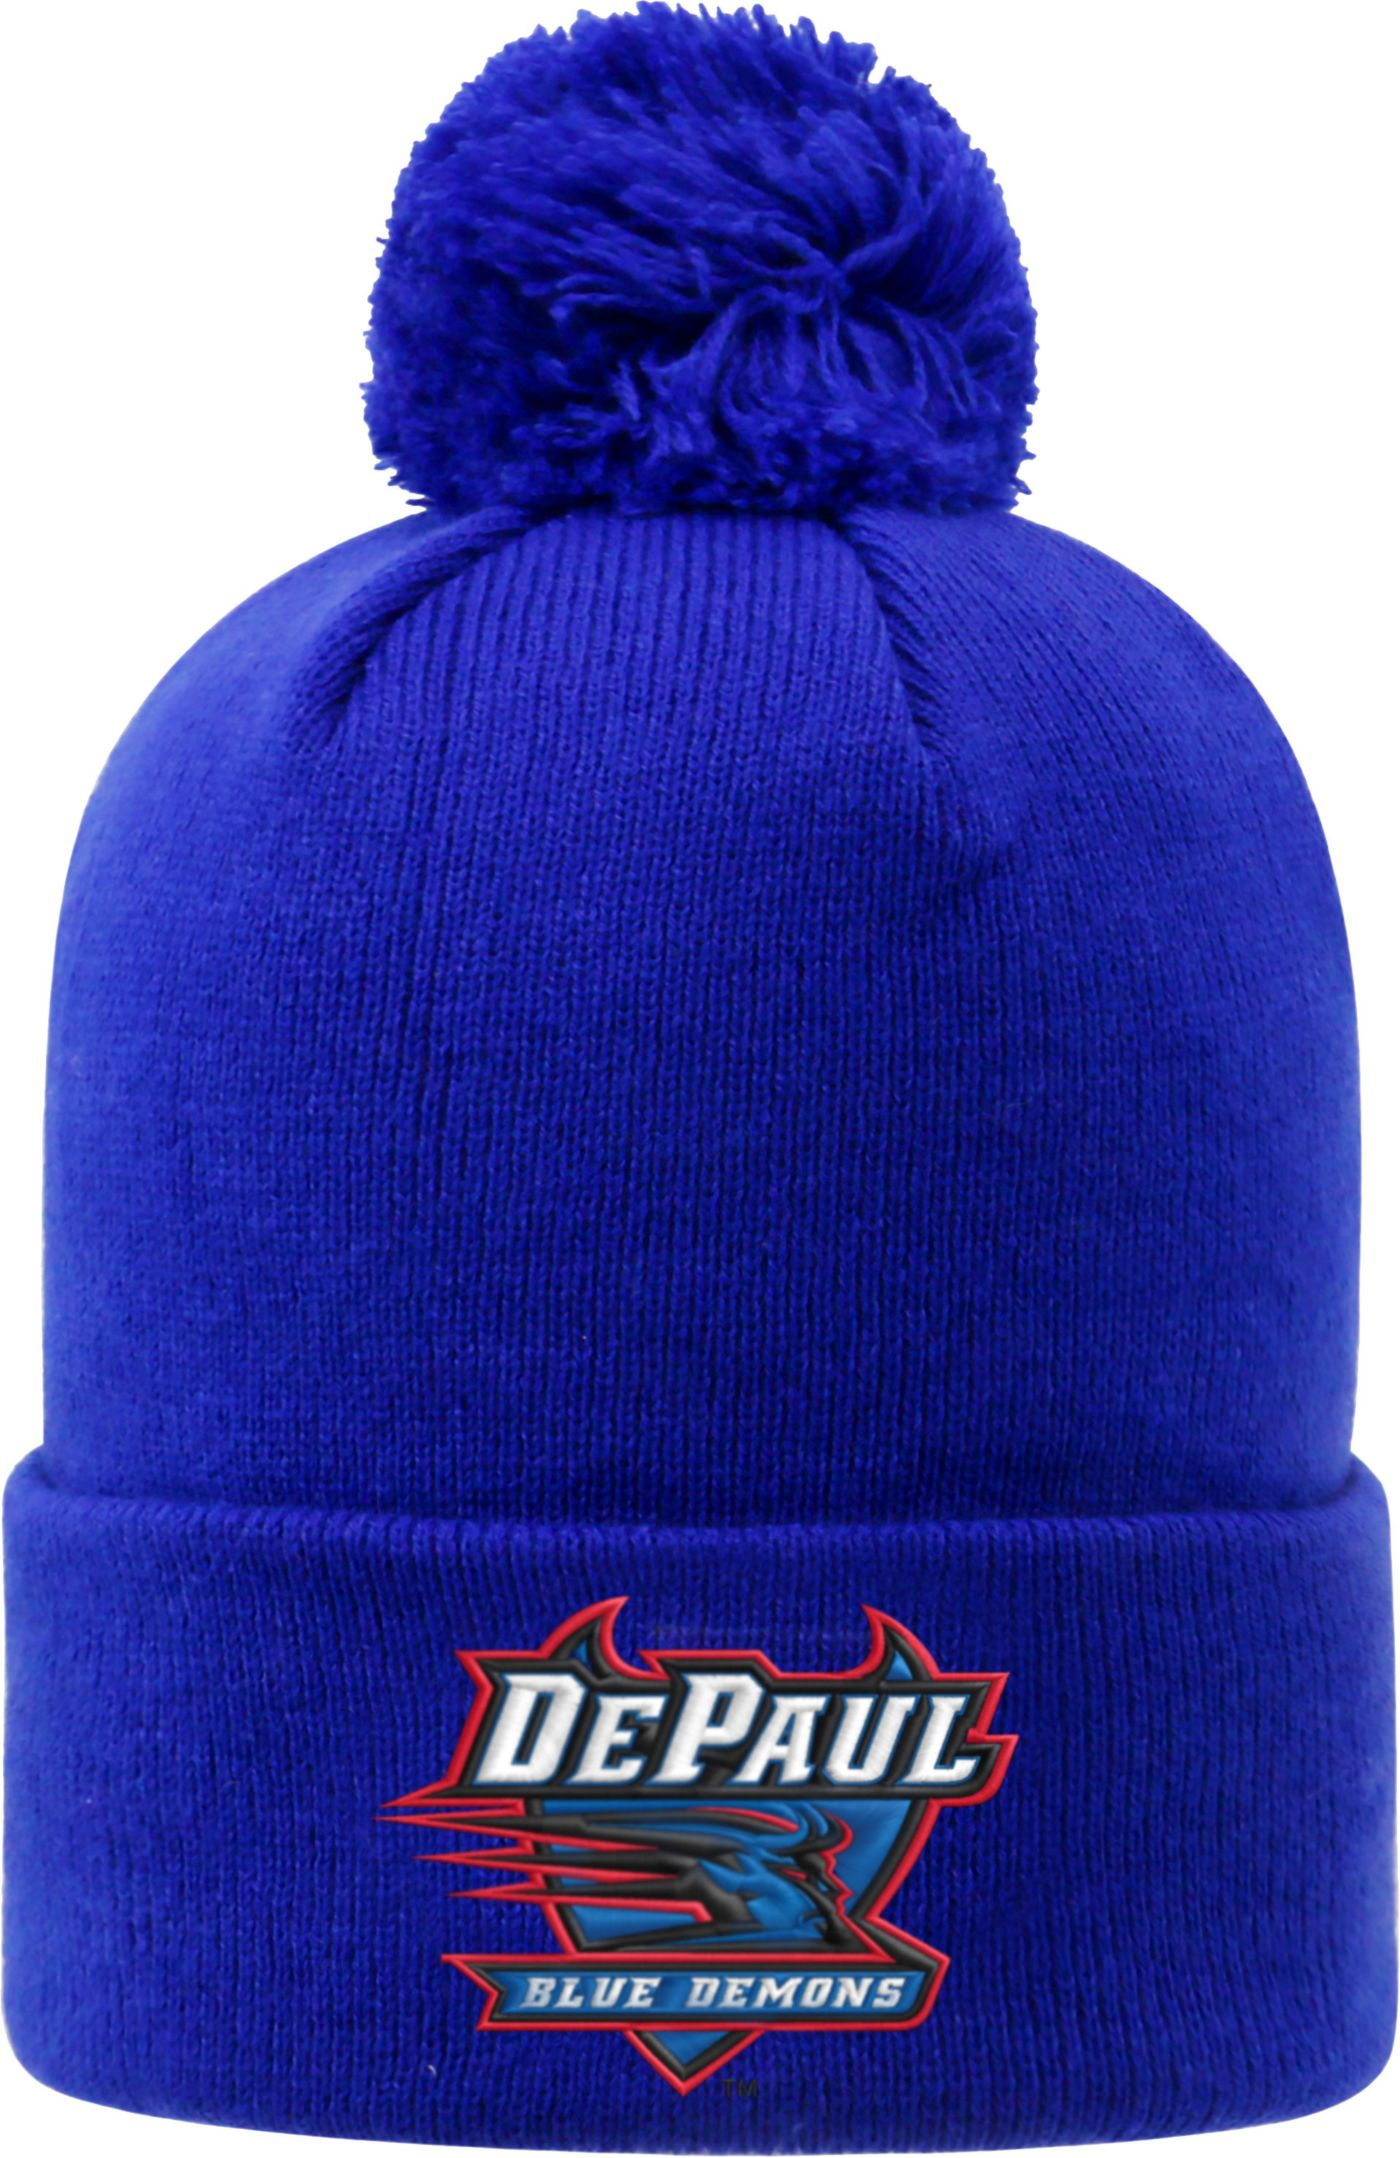 Top of the World Men's DePaul Blue Demons Royal Blue Pom Knit Beanie